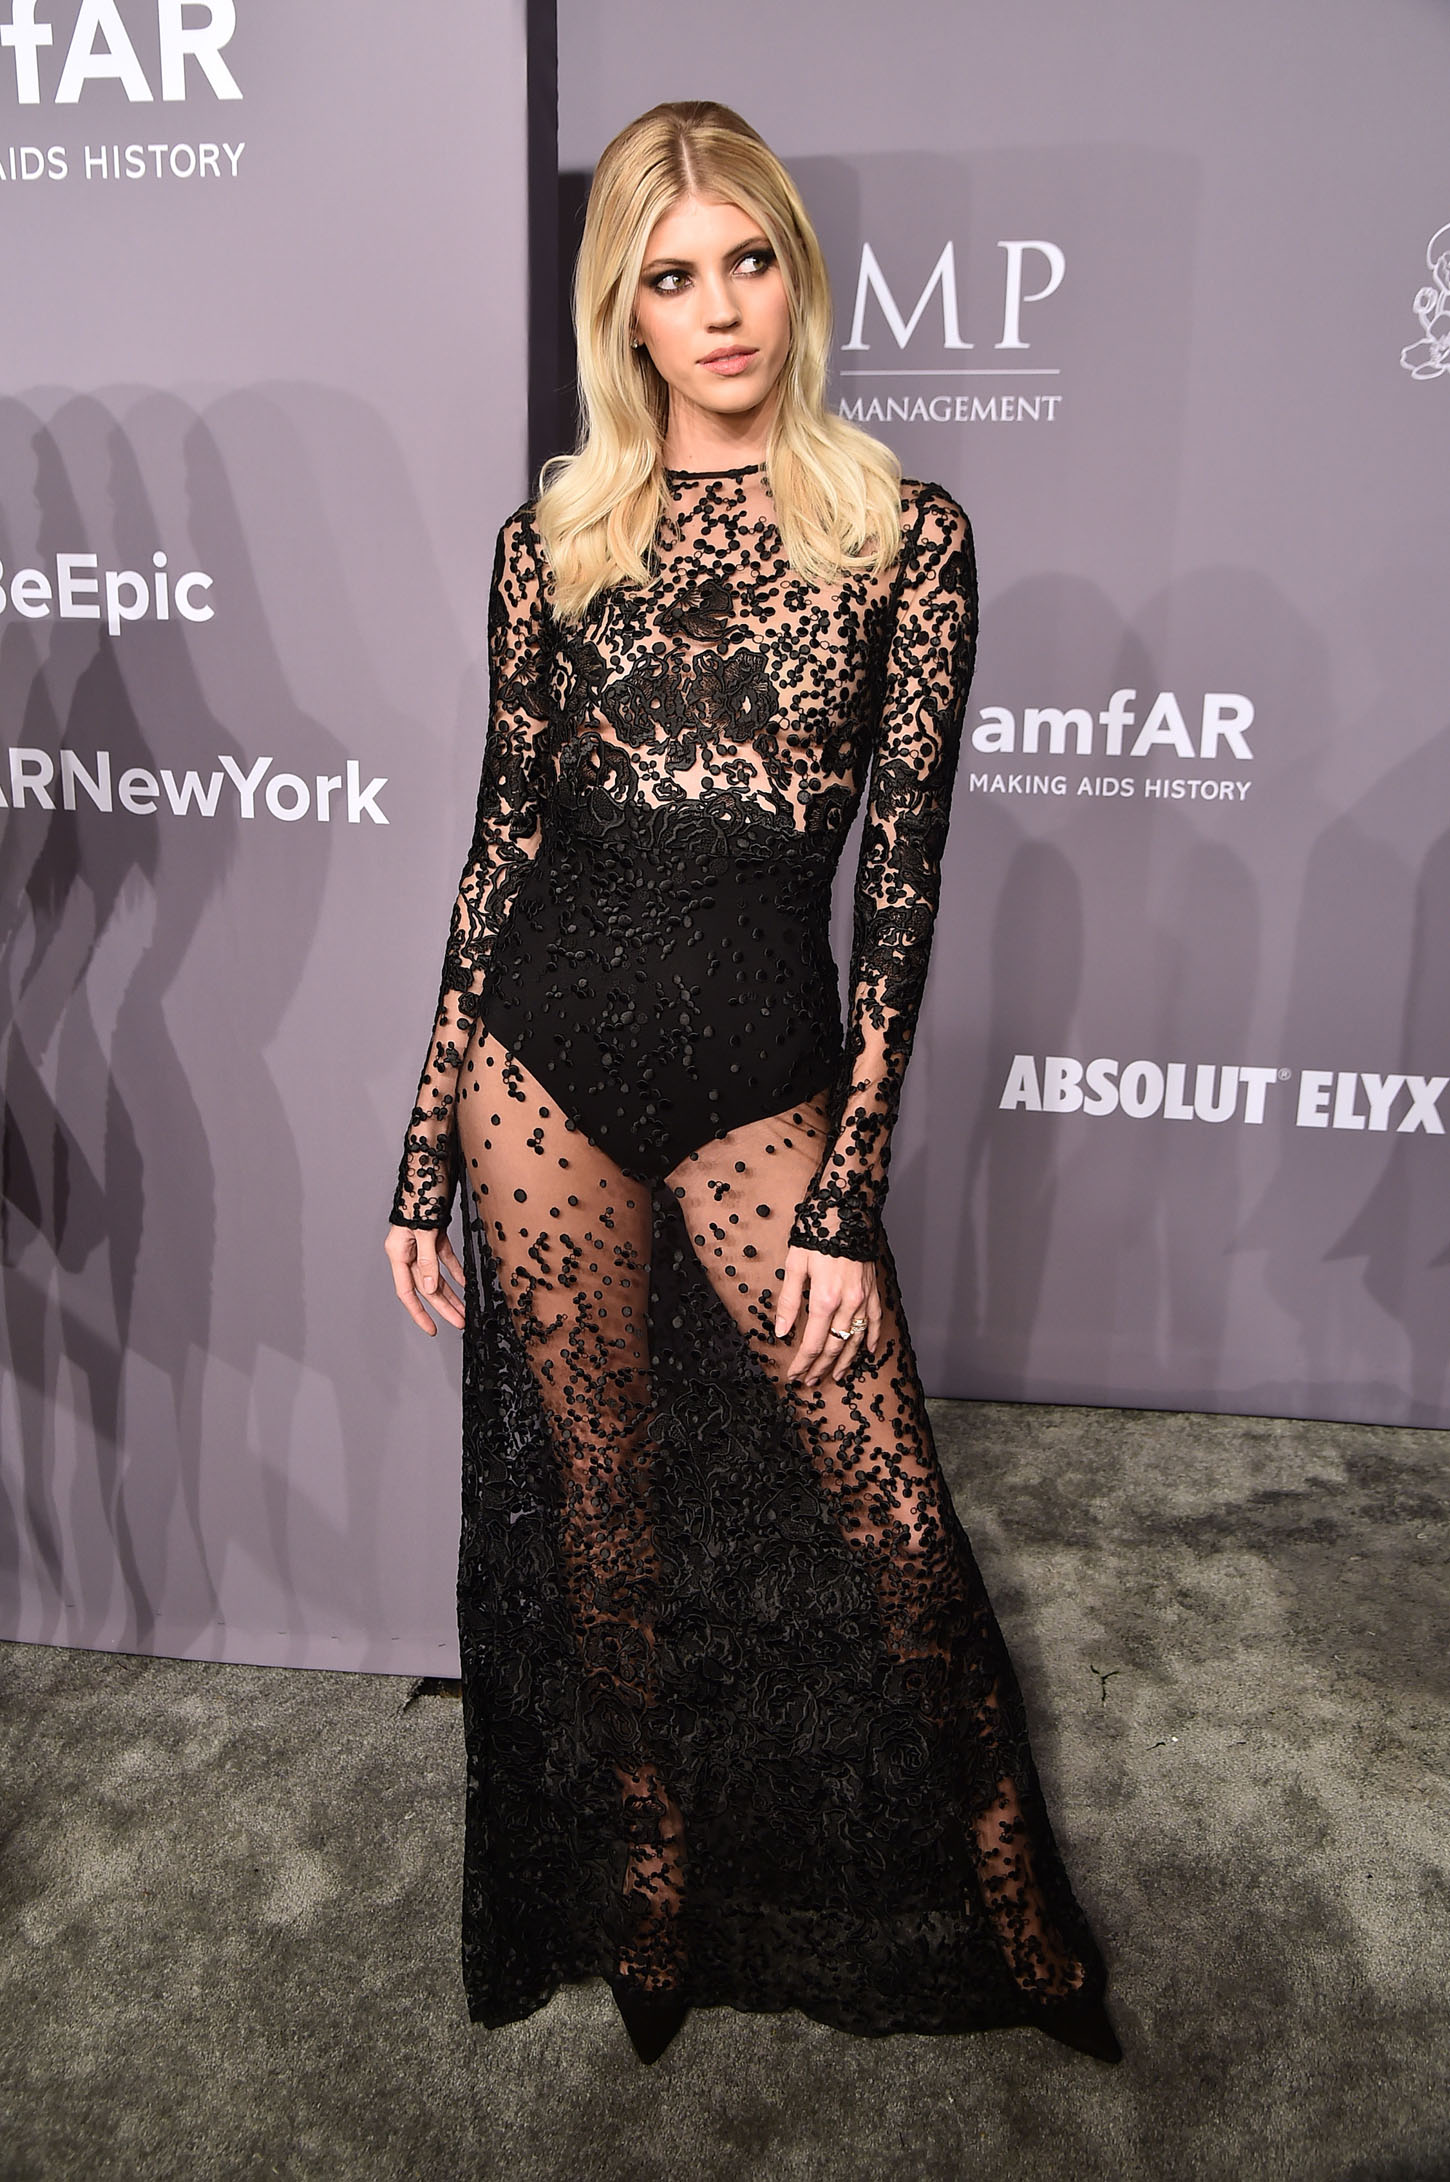 NEW YORK, NY - FEBRUARY 07:  Model Devon Windsor attends the 2018 amfAR Gala New York at Cipriani Wall Street on February 7, 2018 in New York City.  (Photo by Theo Wargo/Getty Images)